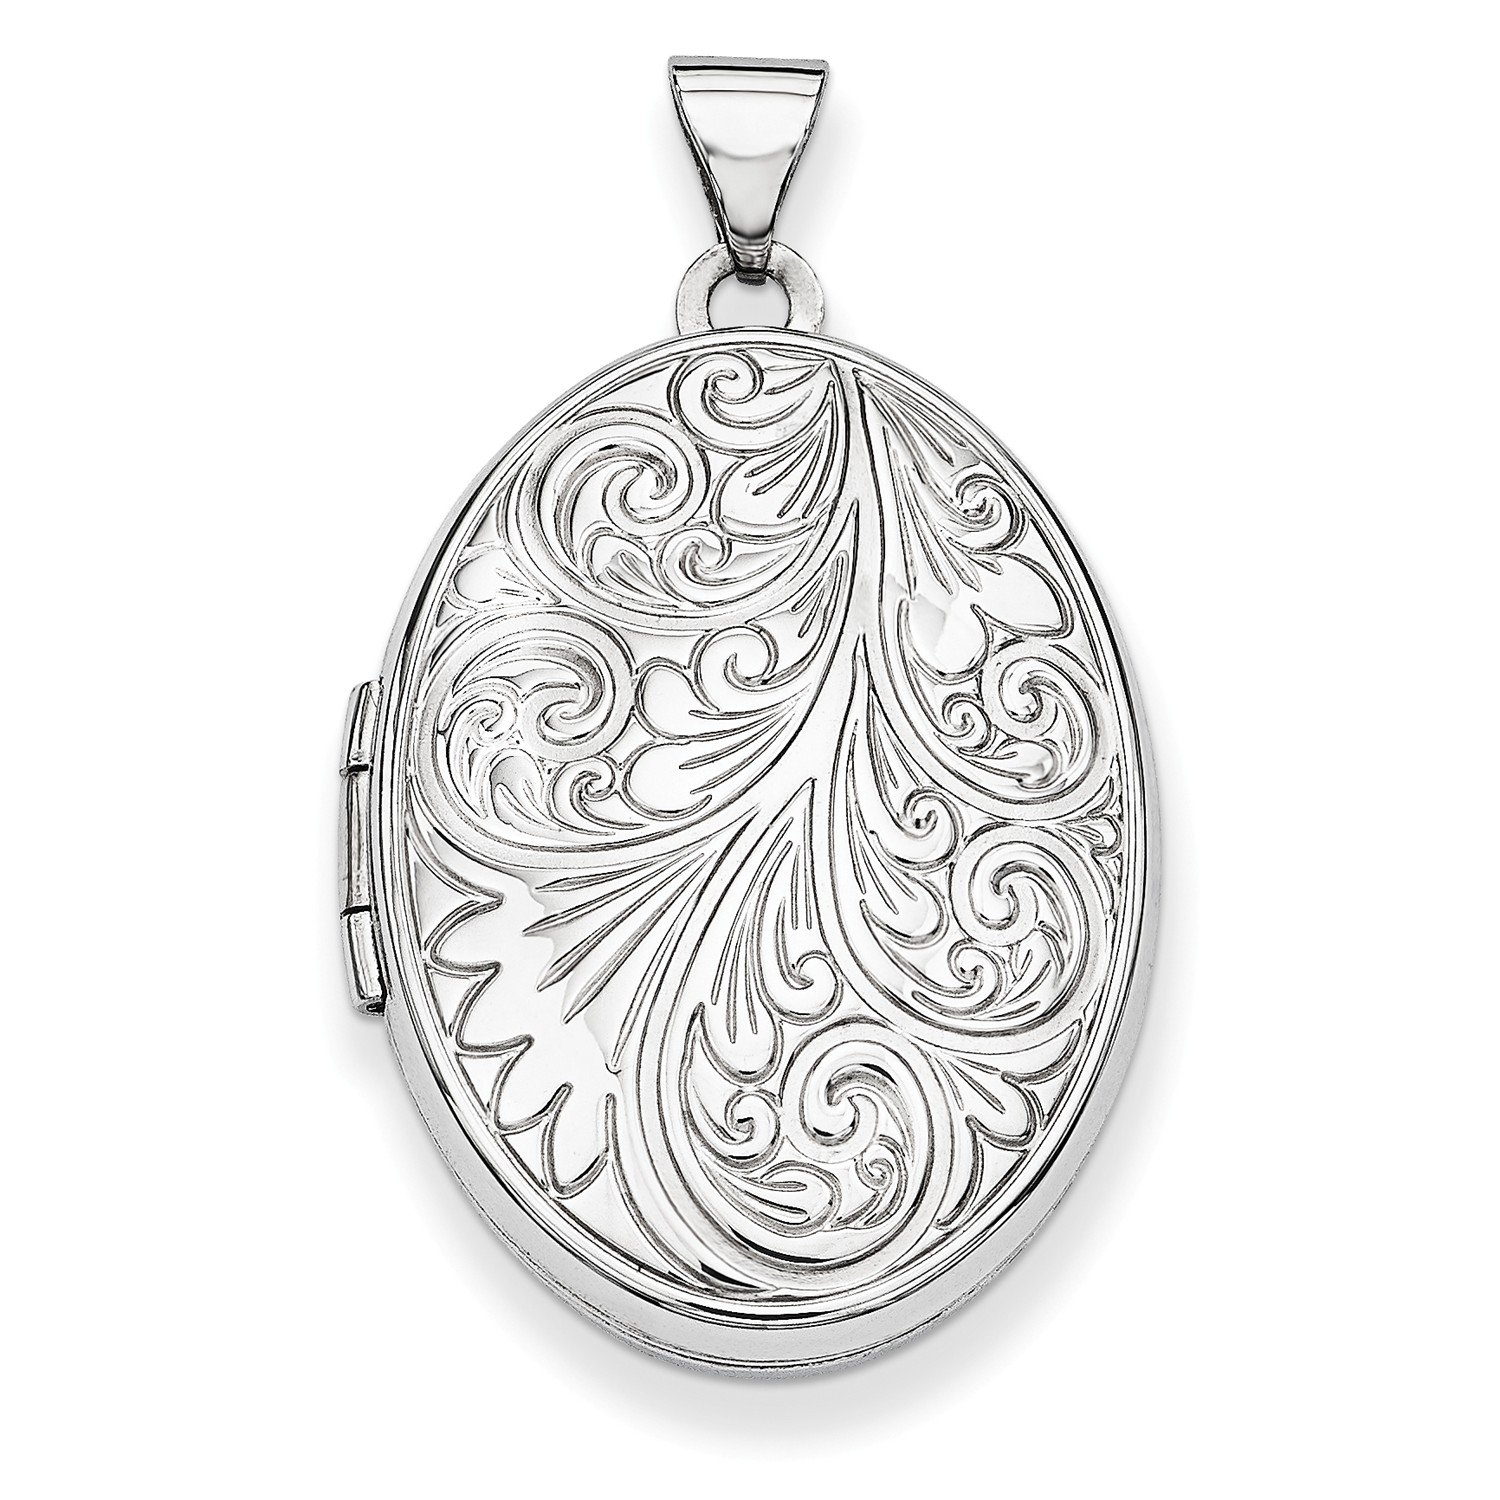 Roy Rose Jewelry 14K White Gold Scroll Oval Locket 26x20mm by Roy Rose Jewelry